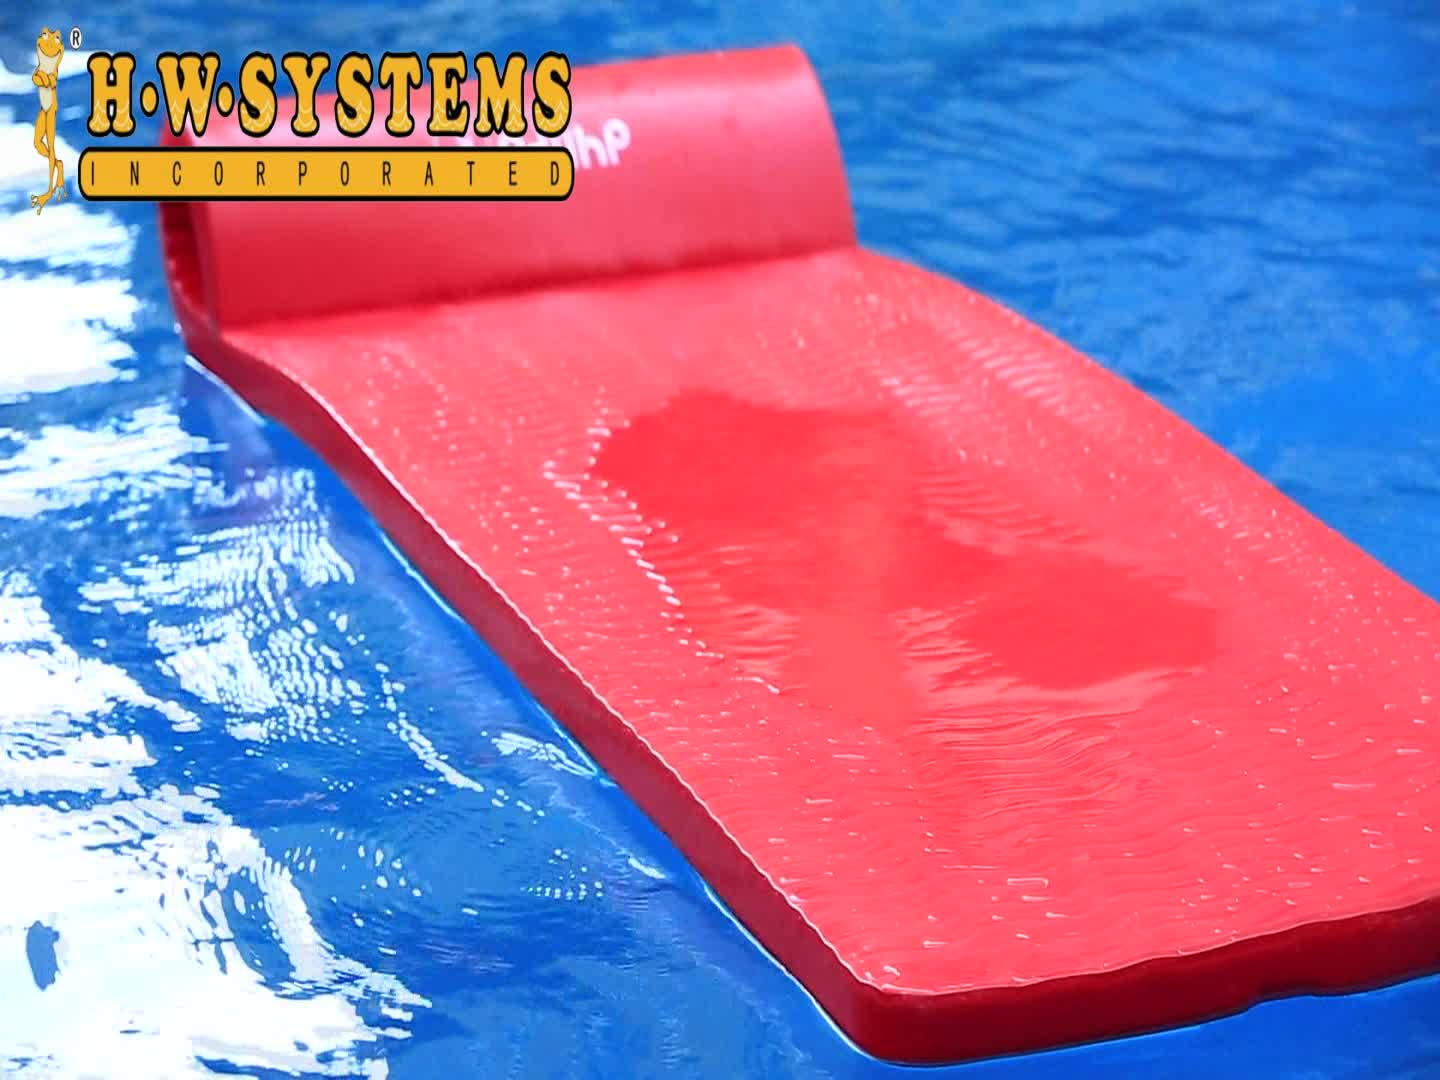 Eco Friendly Natural Custom Design Closed Cell Foam Pool Floats Vinyl  Coated Foam Mat For Water Park - Buy Pool Float,Foam Pool Float,Closed Cell  Foam ...